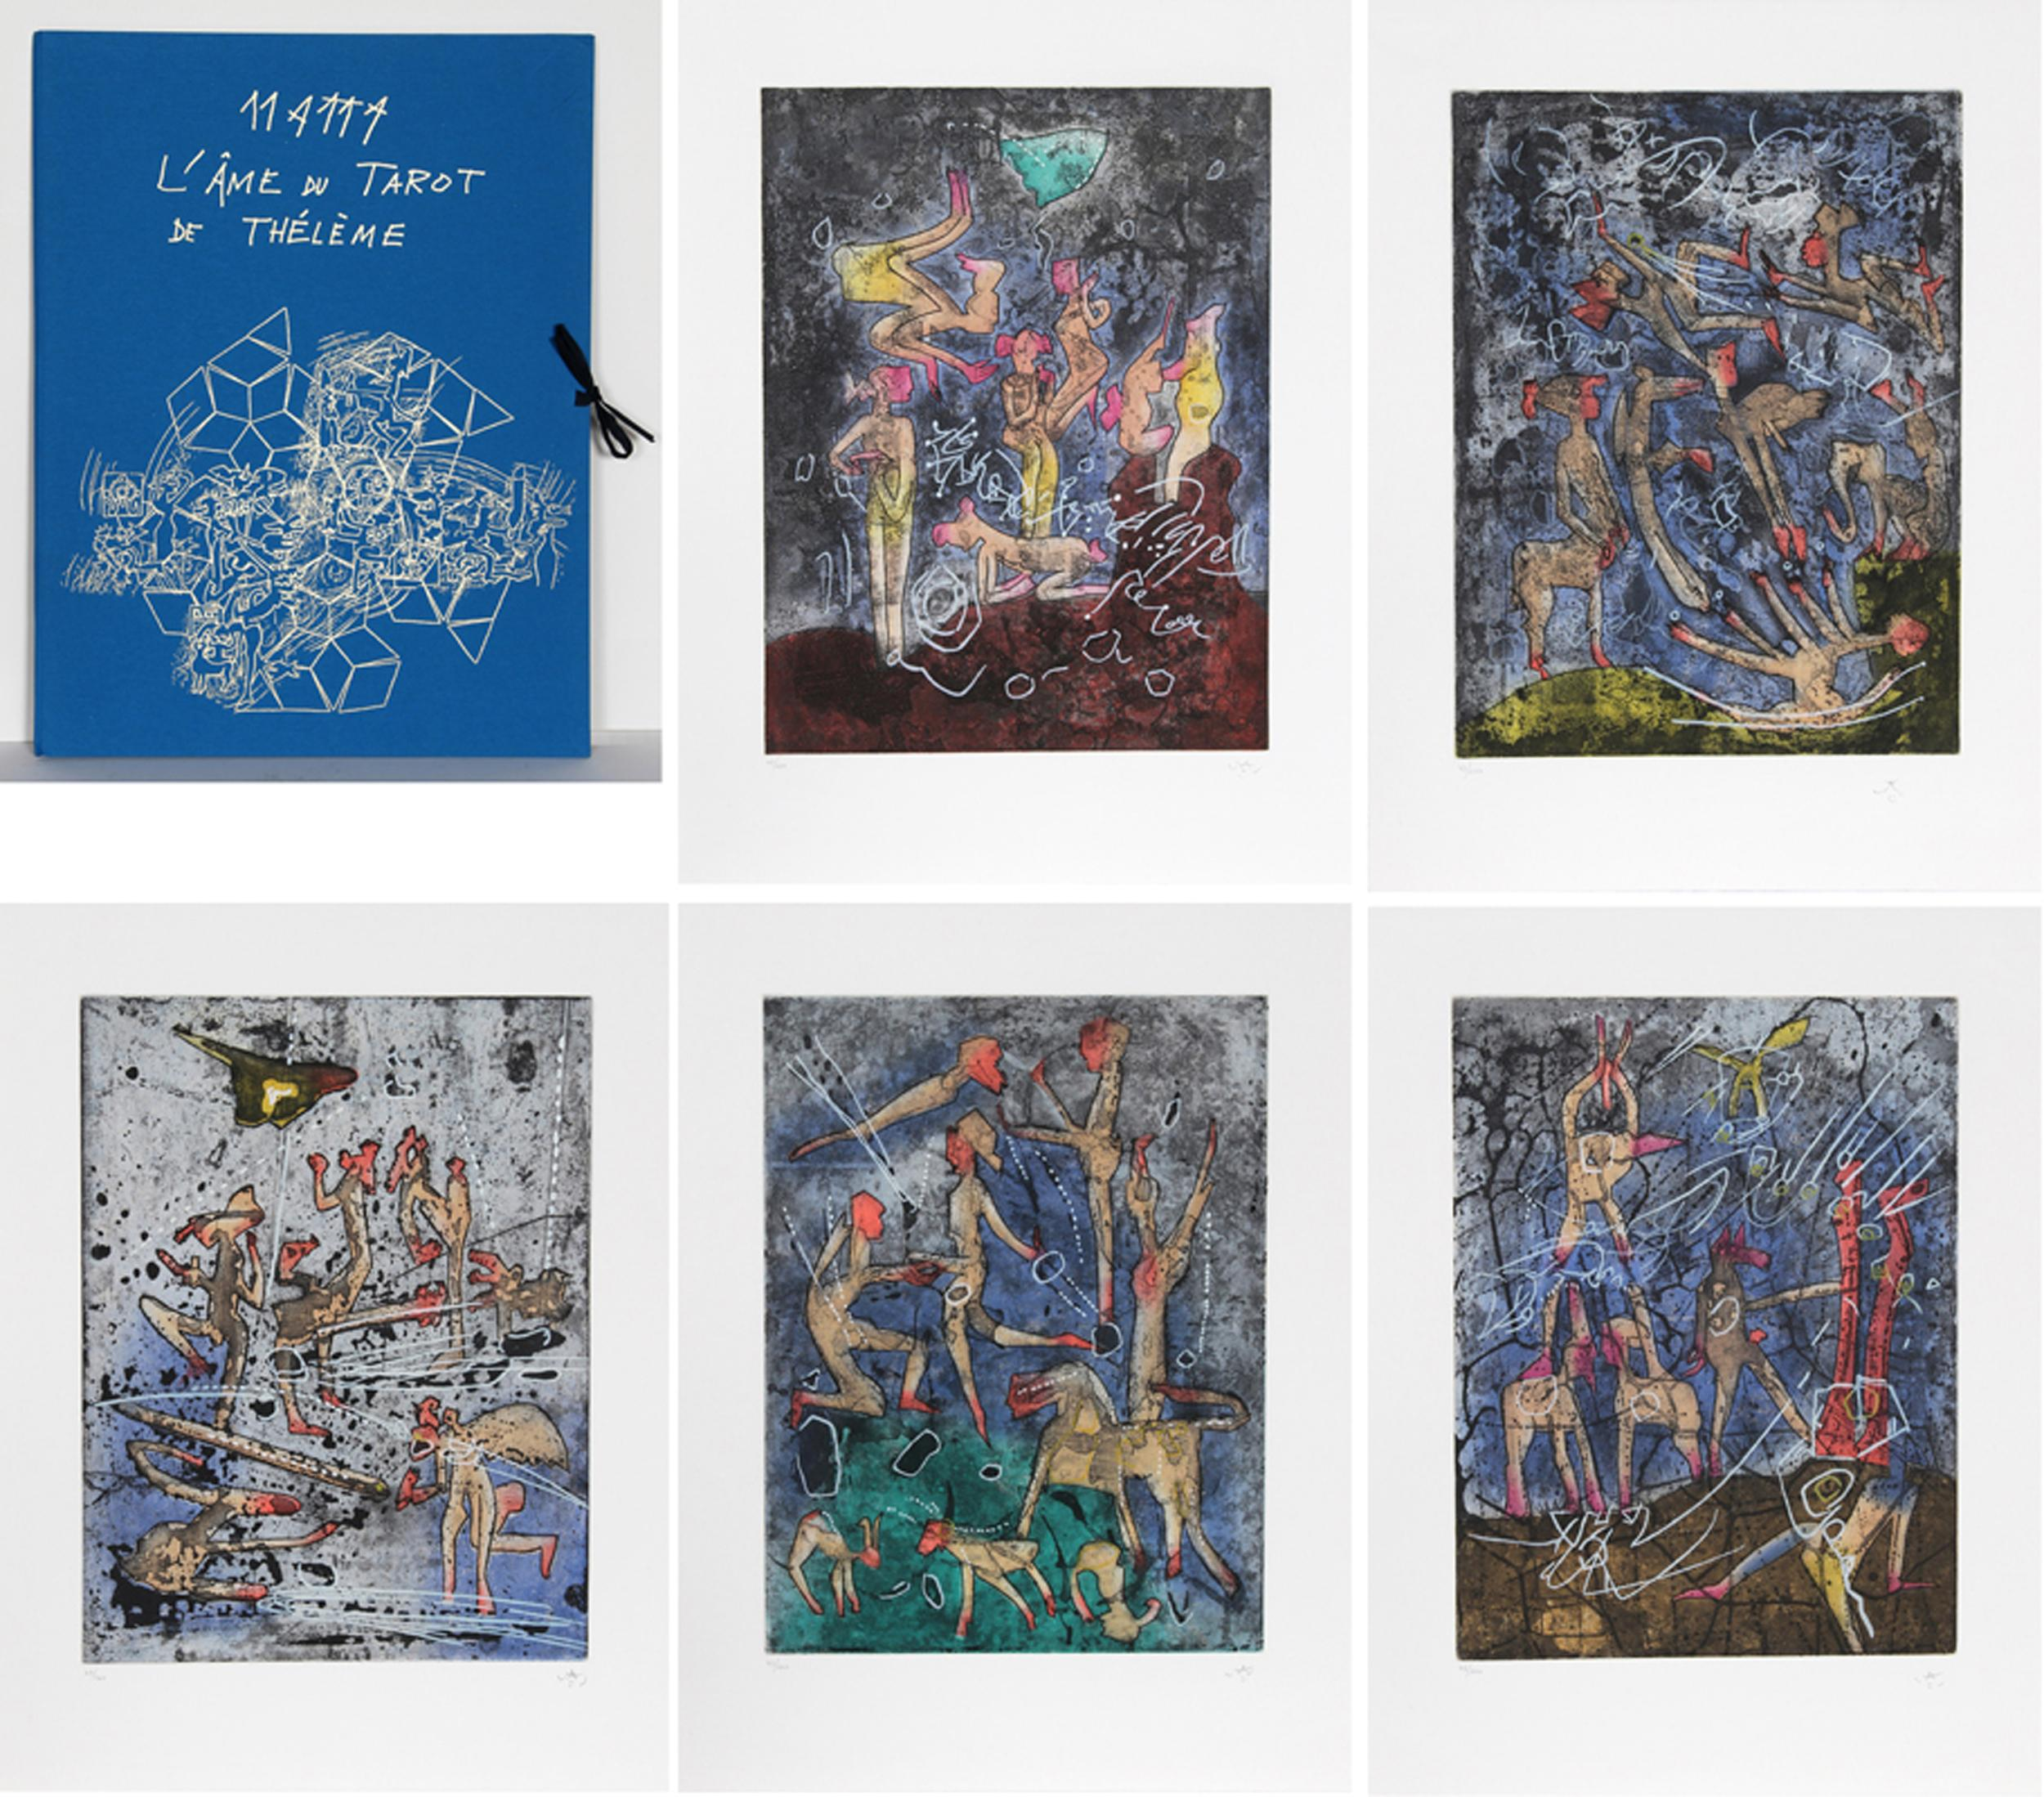 Roberto Matta, L'Ame du Tarot de Theleme, Portfolio of Five Aquatint Etchings